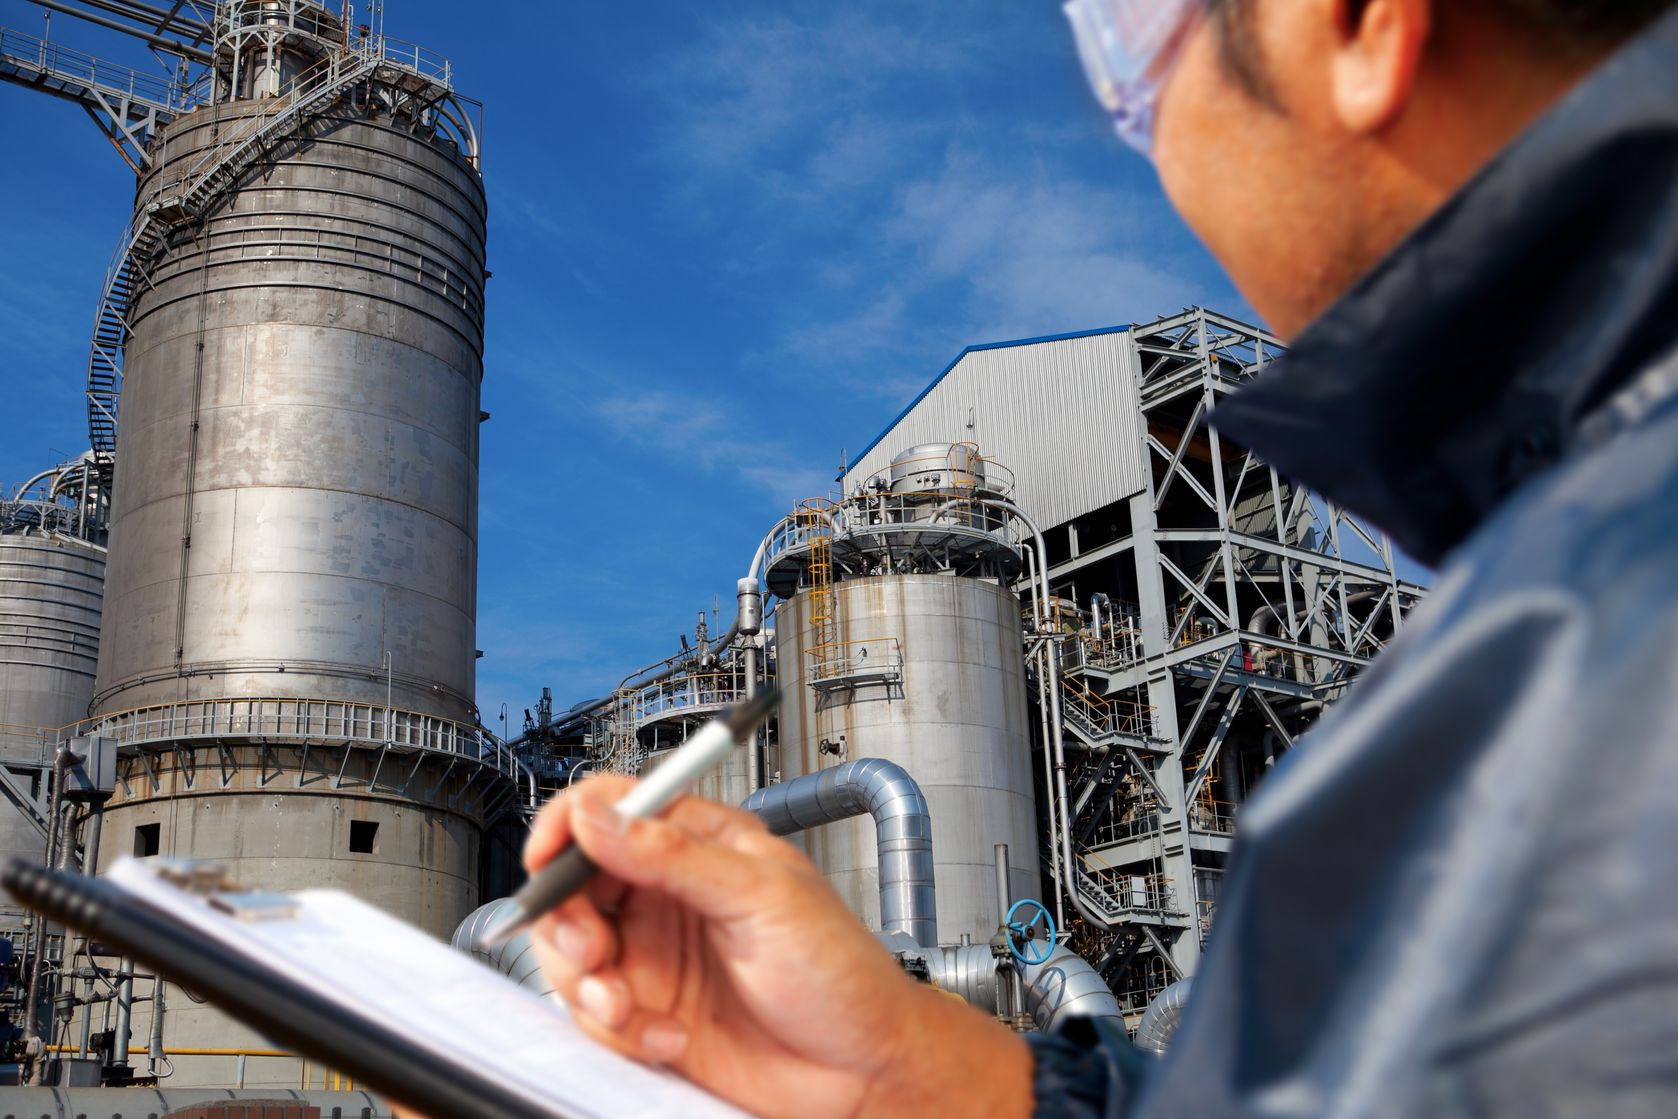 With careful planning and implementation, Yokogawa can help you achieve a safe, cost-effective, and value-added hot or cold cutover migration process for your system.